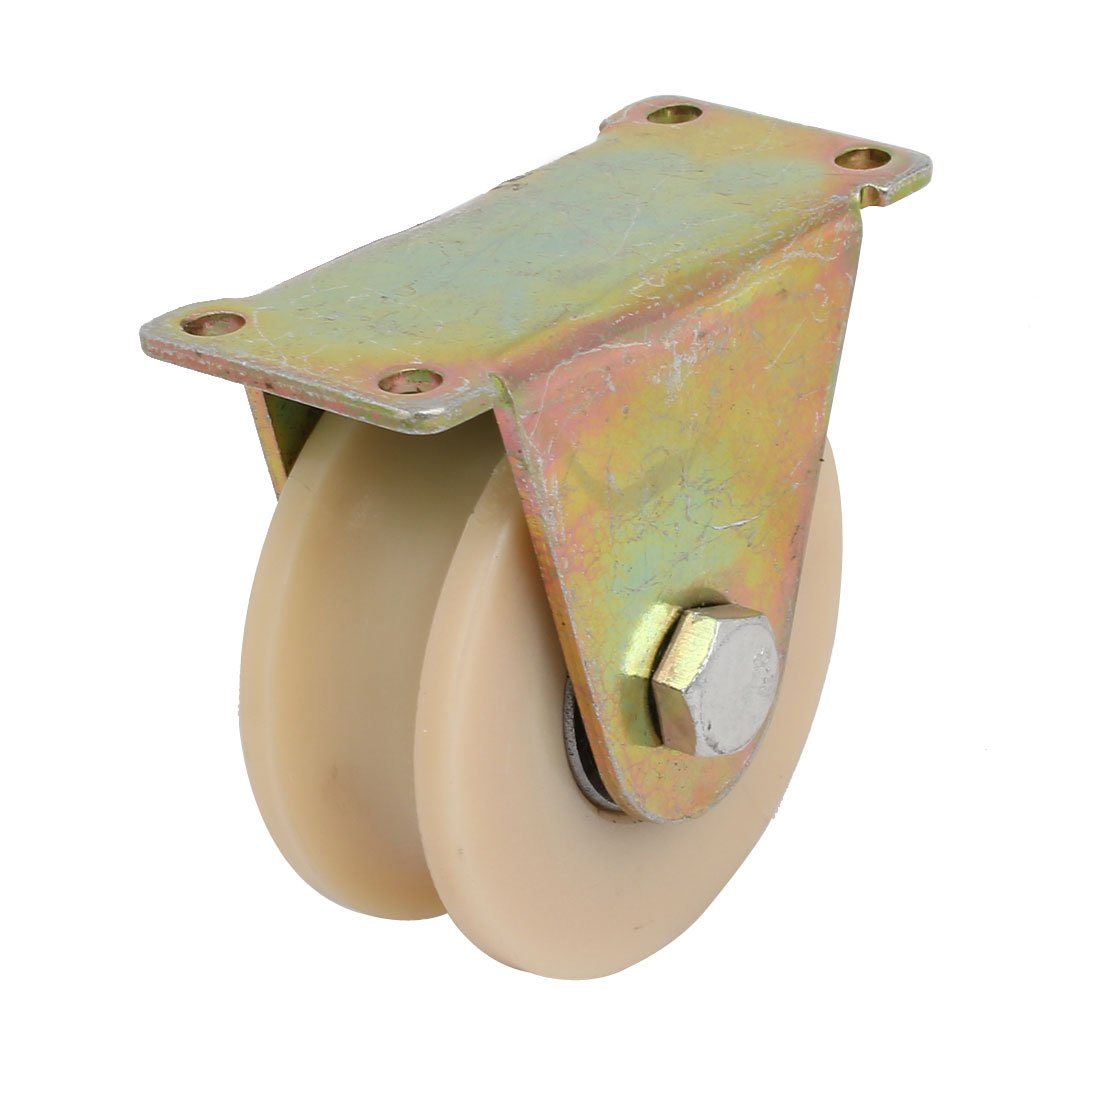 uxcell 3-inch Dia 300KG Capacity U Groove Rigid Caster Wheel for Industrial Machines